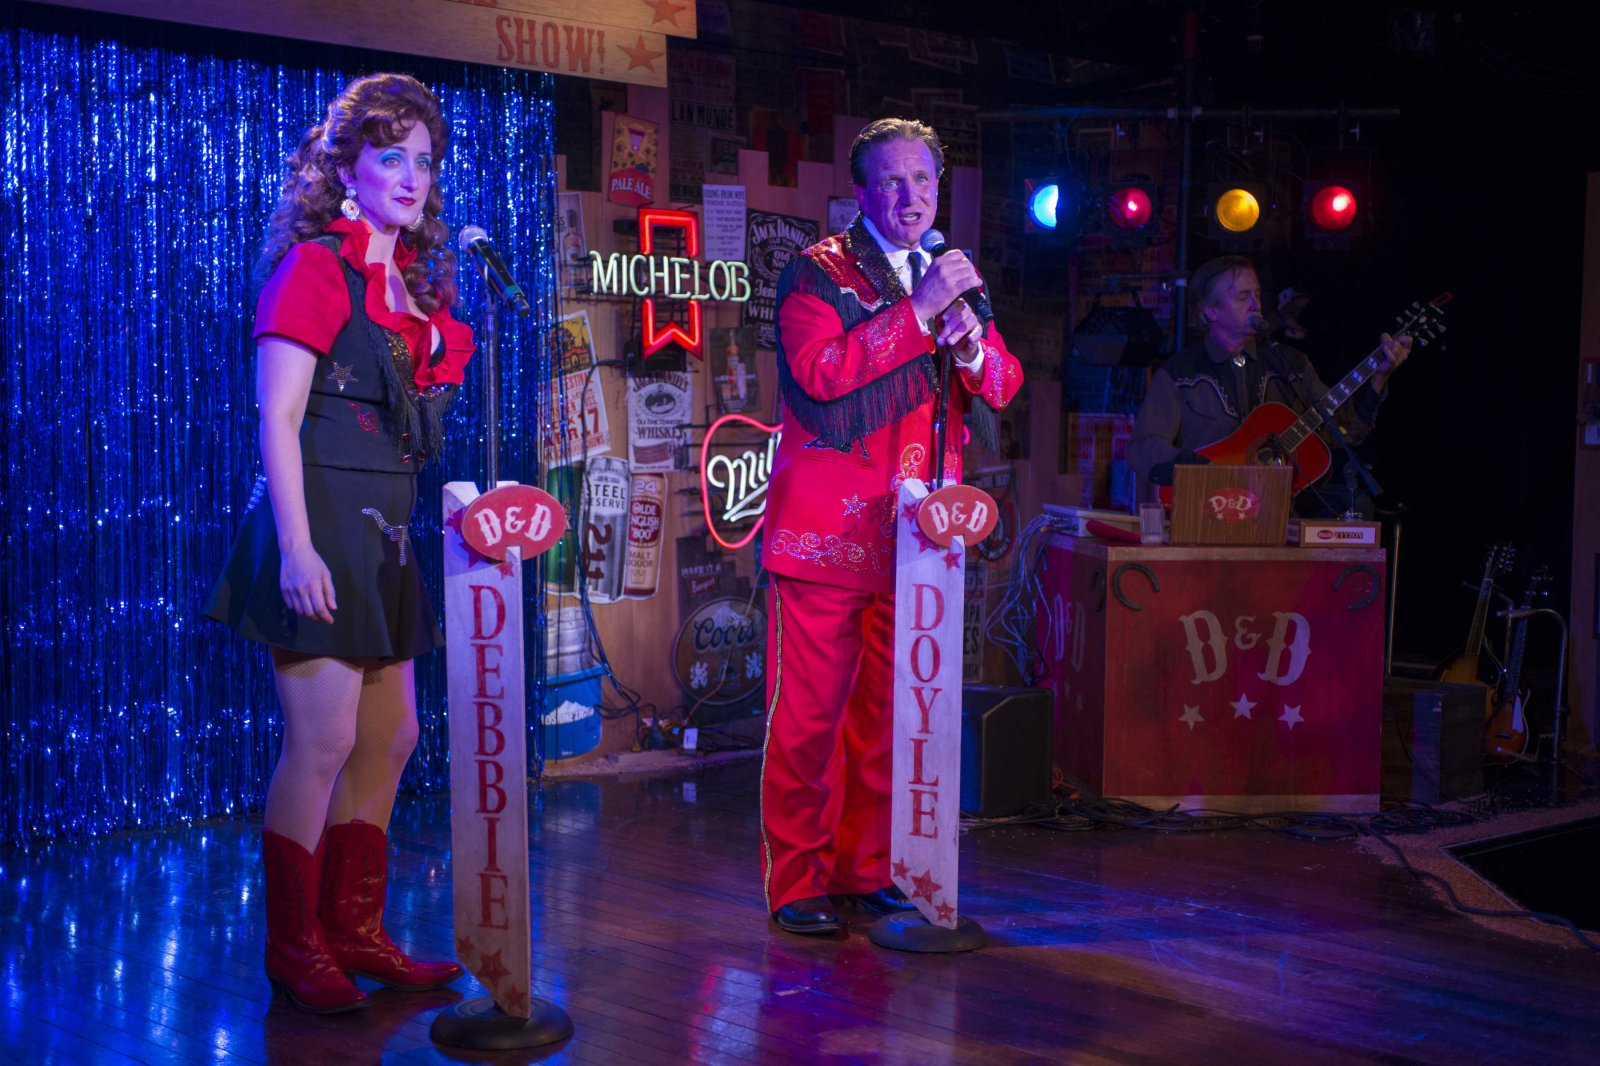 Erin Parker as Debbie, Michael Accardo as Doyle, and Bo Johnson as Buddy in Milwaukee Repertory Theater's 2014/15 Stackner Cabaret production of The Doyle & Debbie Show. Photo by Michael Brosilow.